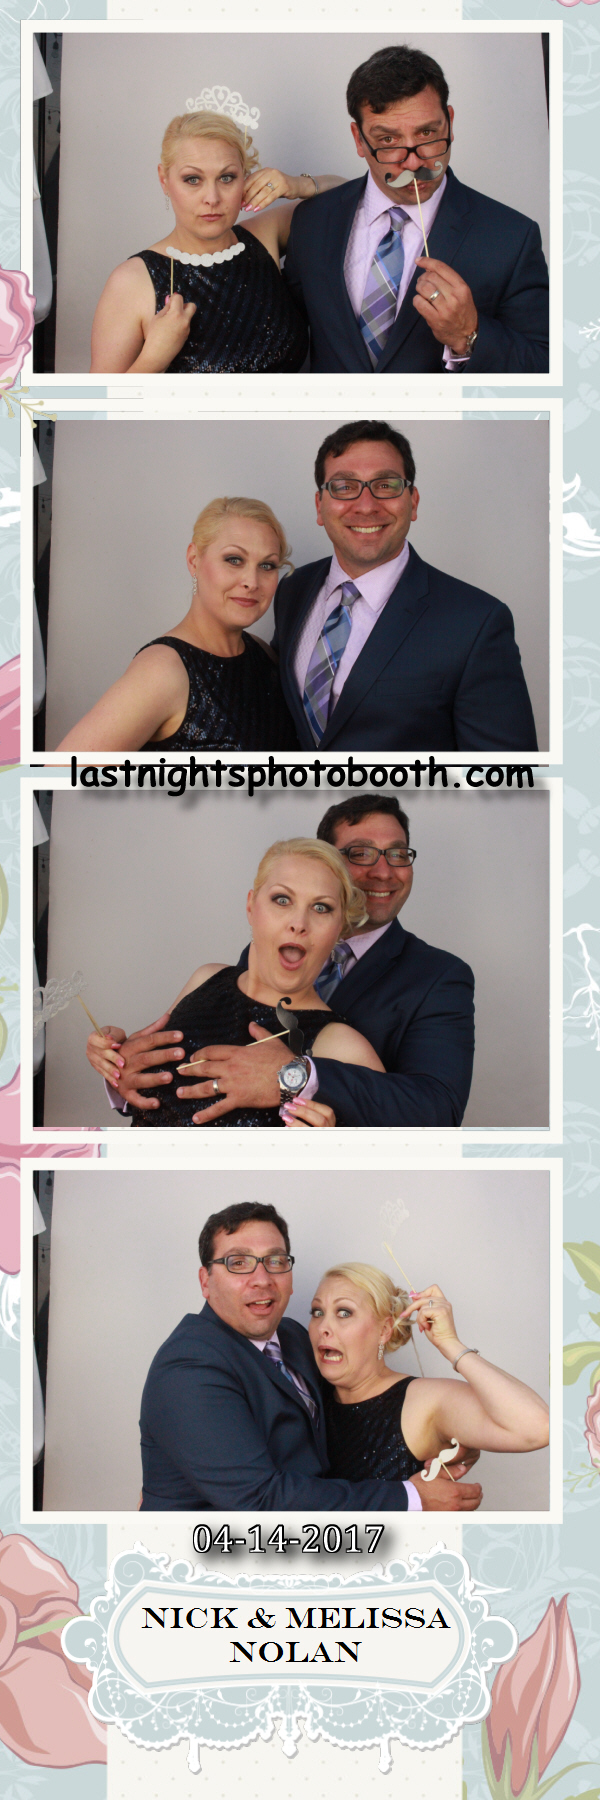 Photo Booth Rental for Nick and Melissas Wedding_02